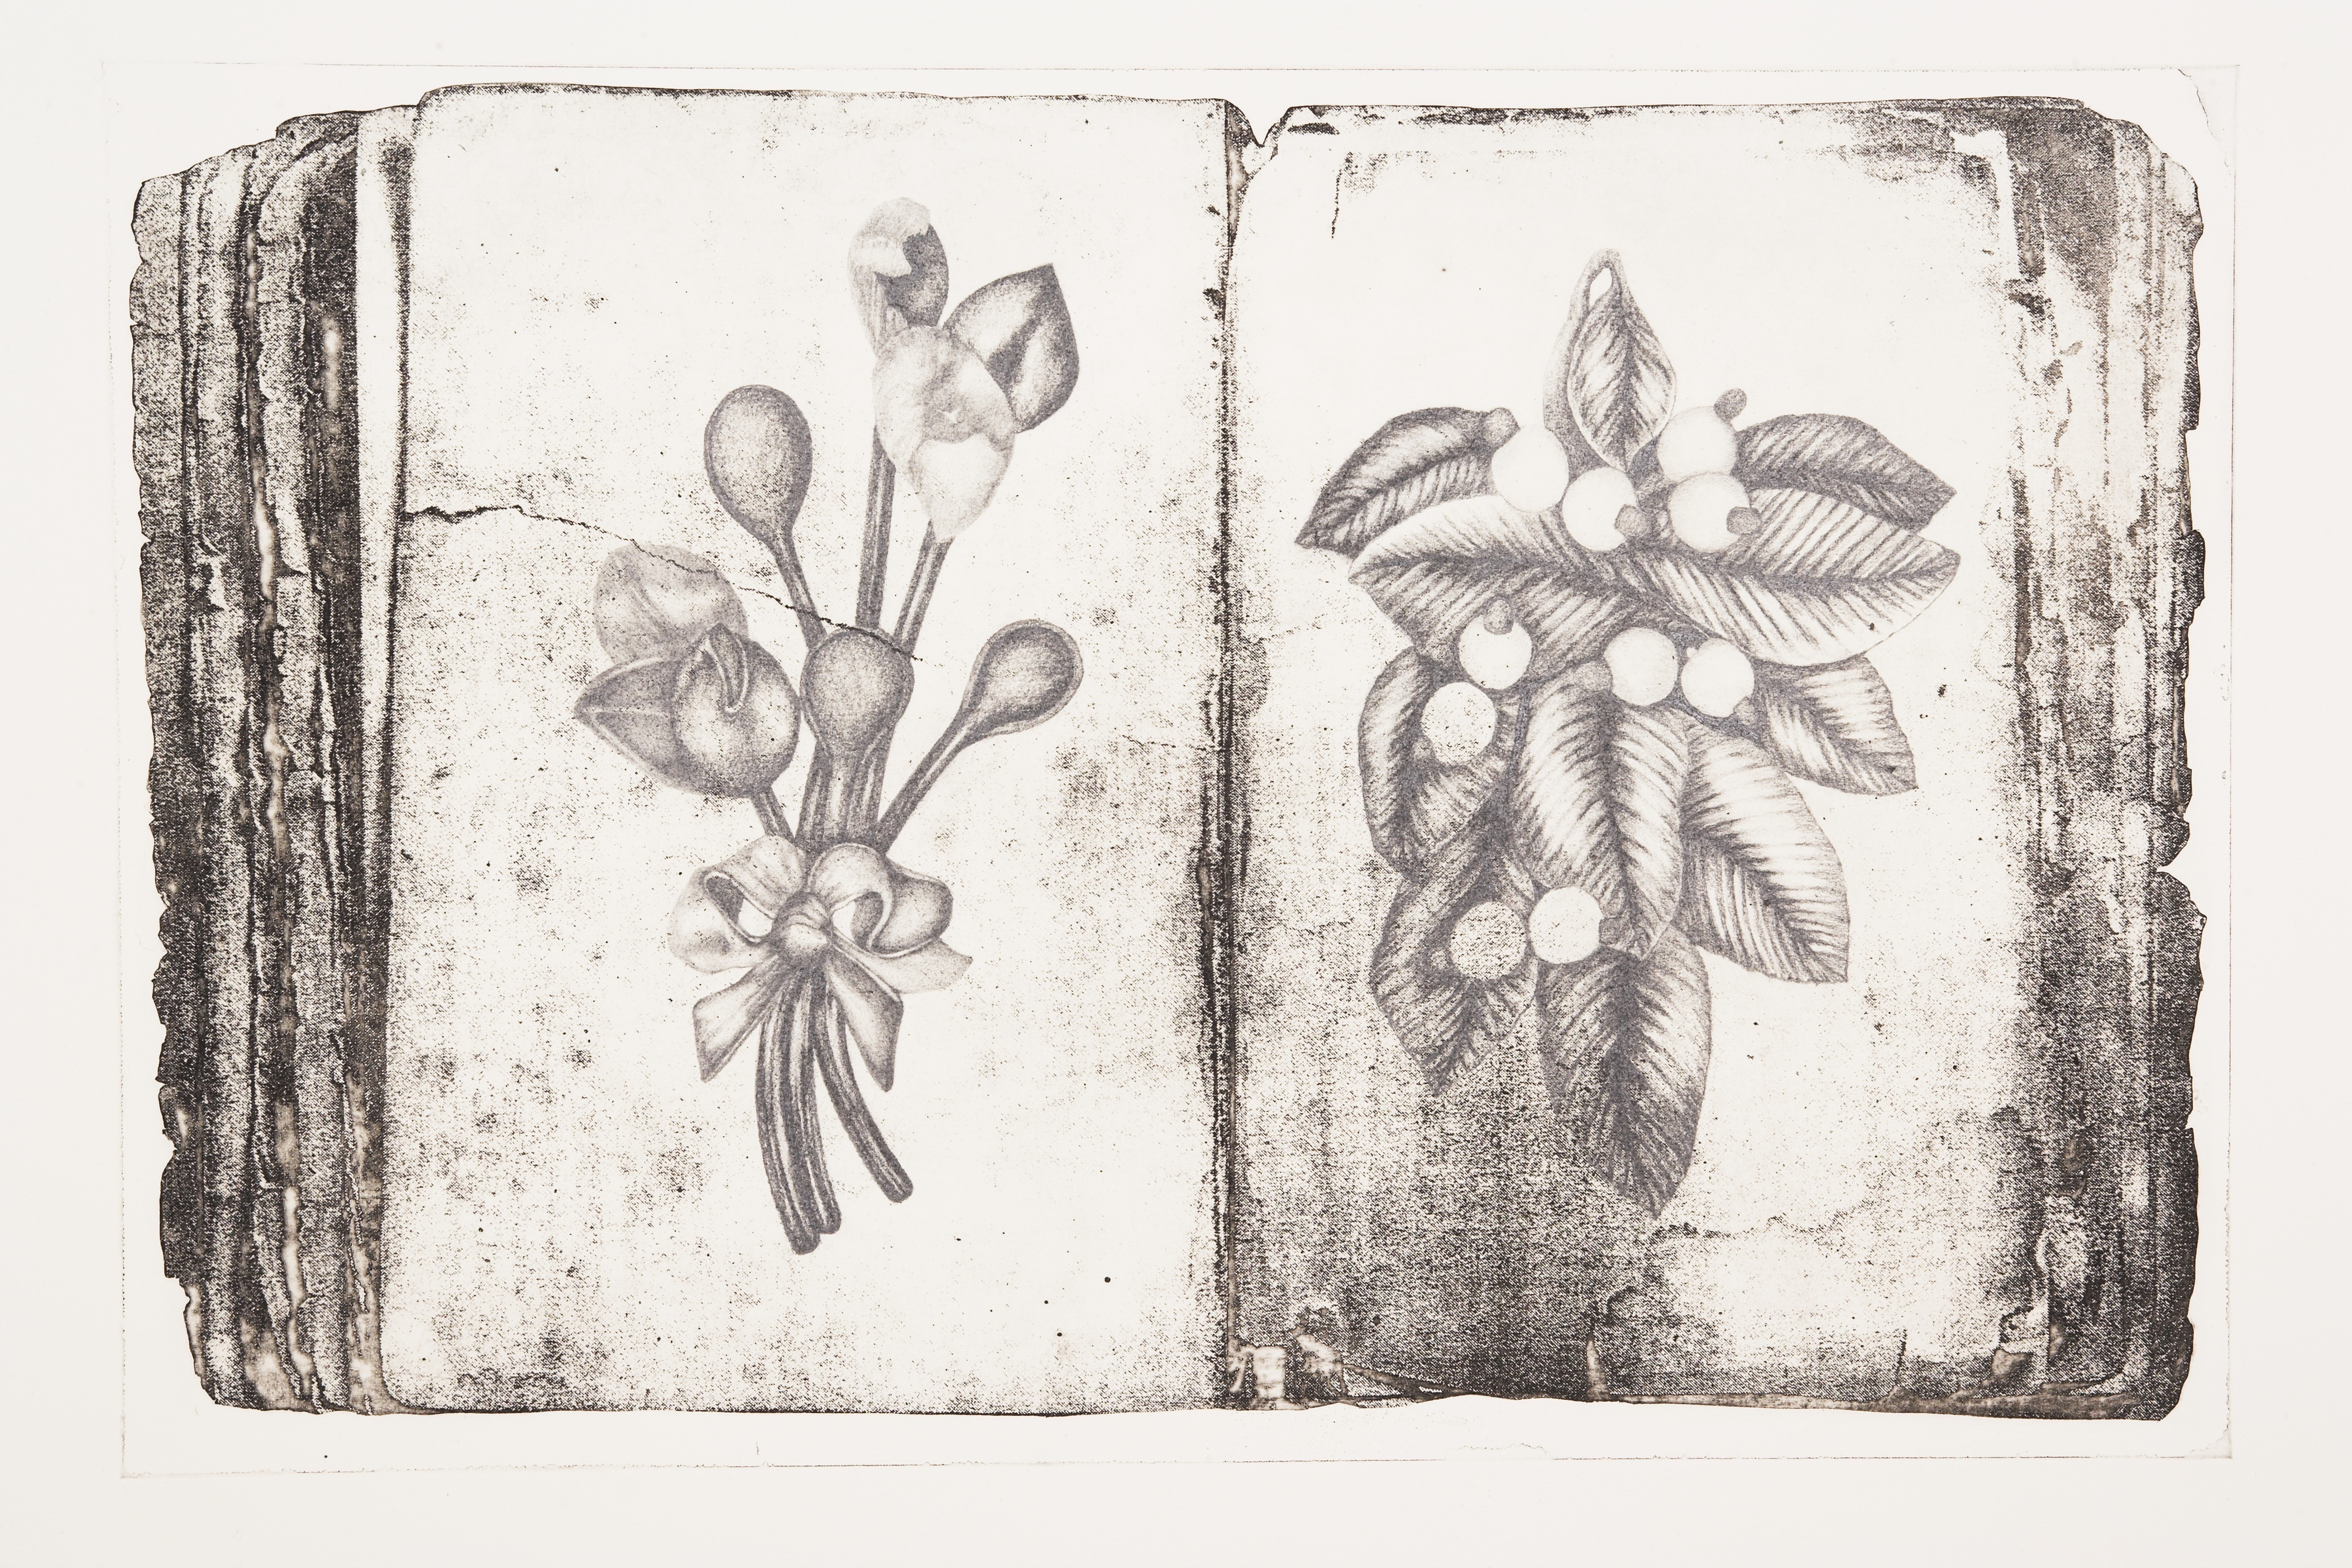 Jane Buyers' Chronicles #8 is a brown-grey etching of an open book displaying a fine-detailed botanical drawing